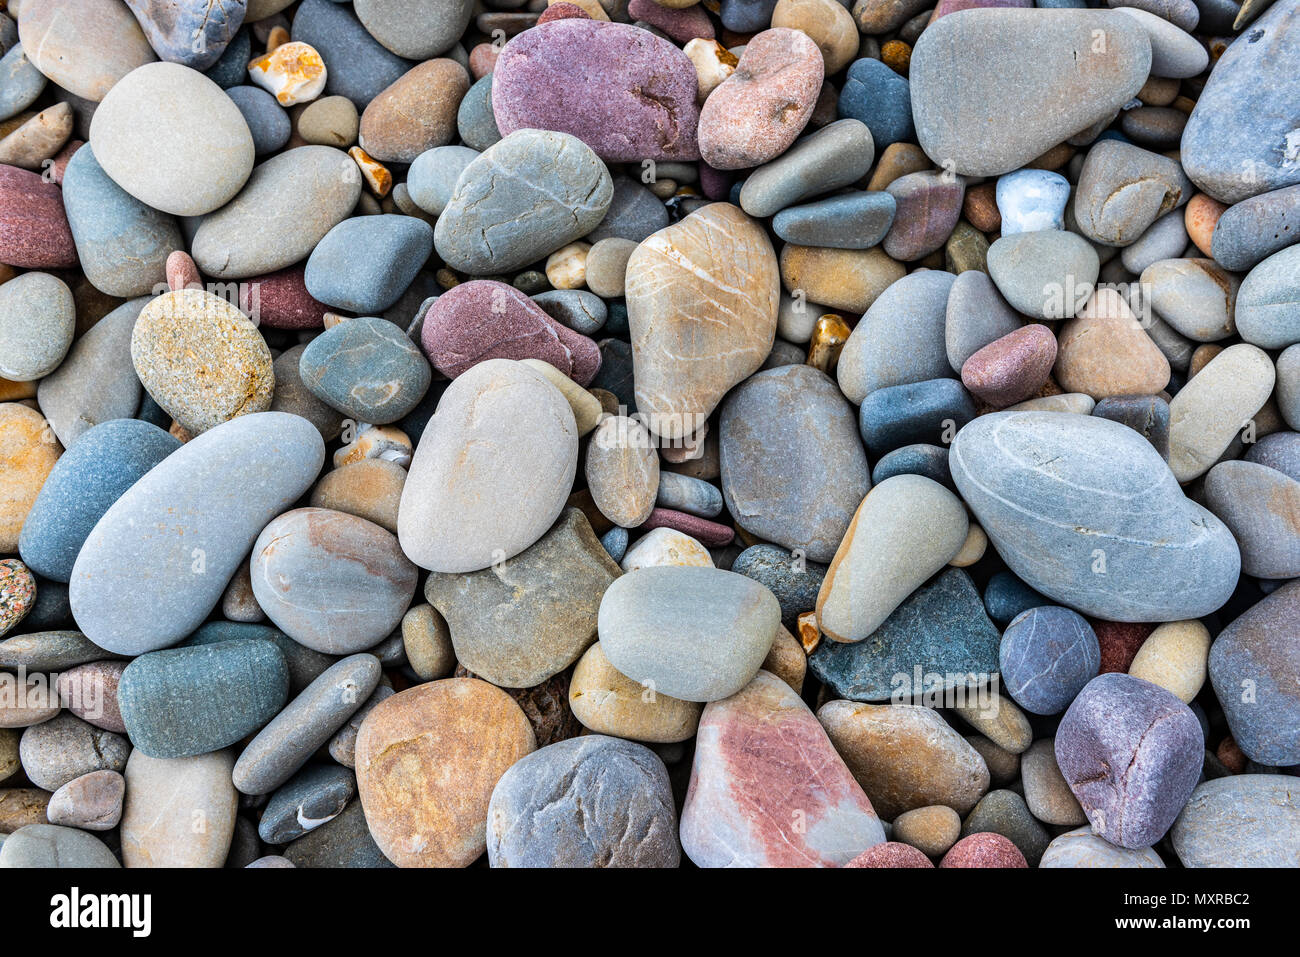 Multicolored pebbles on a beach - Stock Image